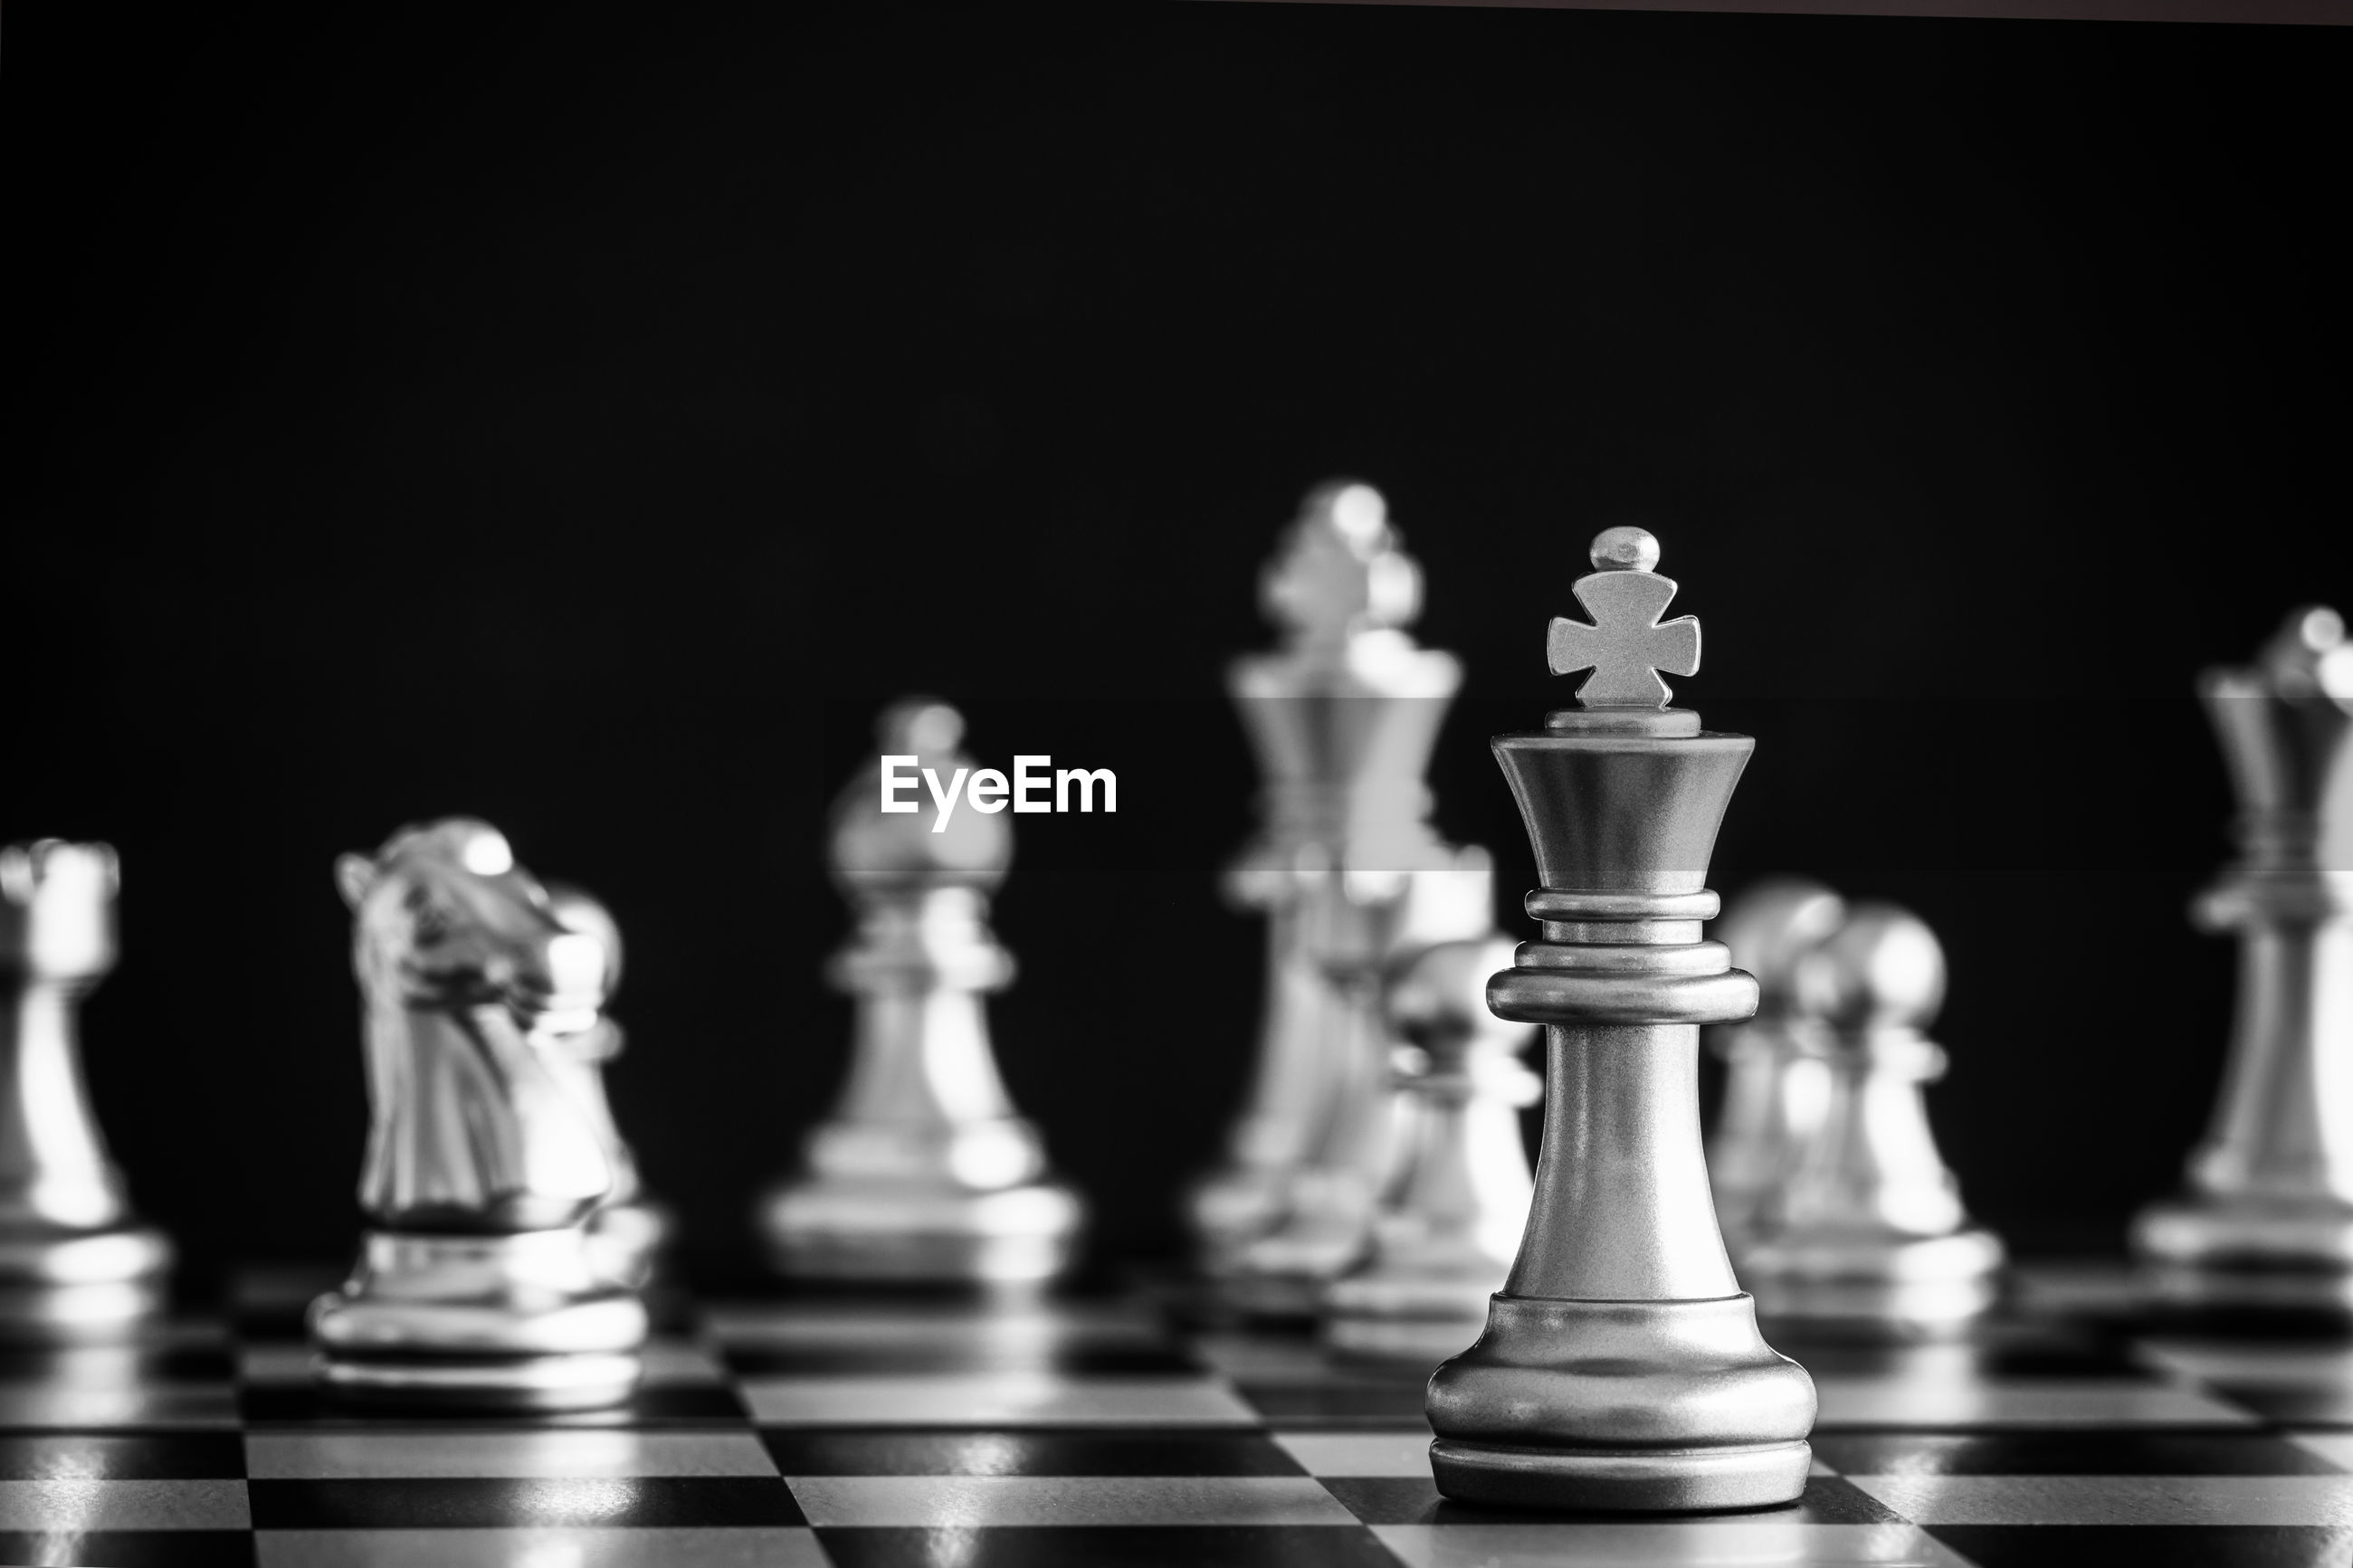 Close-up of chess pieces on board against black background